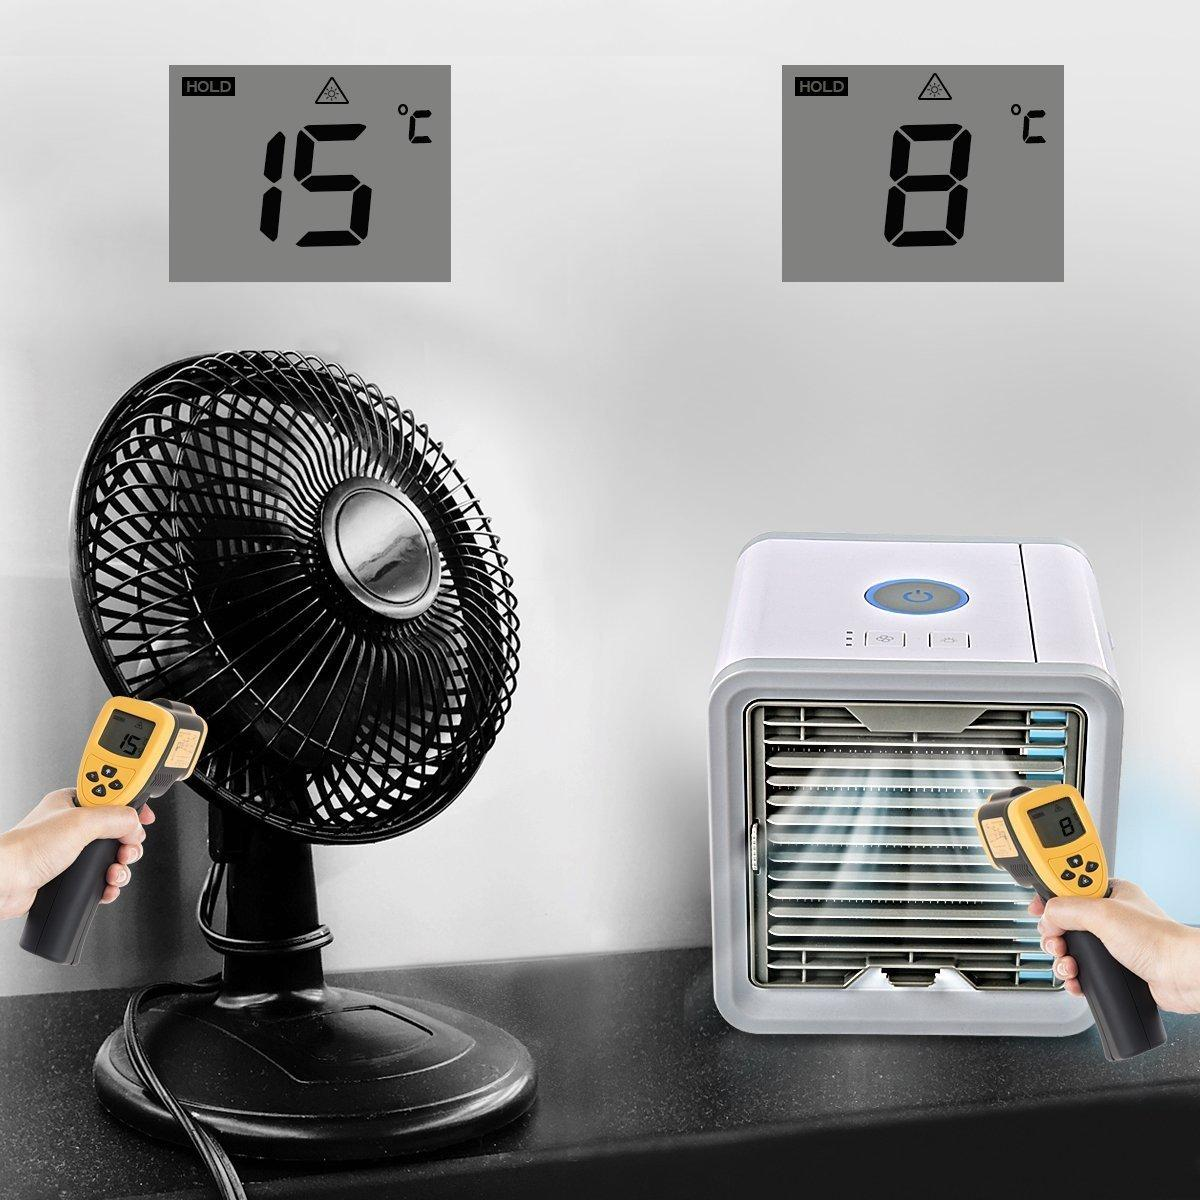 Conditioner Fan Personal Arctic Air Cooler Humidifier Purifier Air Cooling Fans USB Portable Air Cooler For Home Office